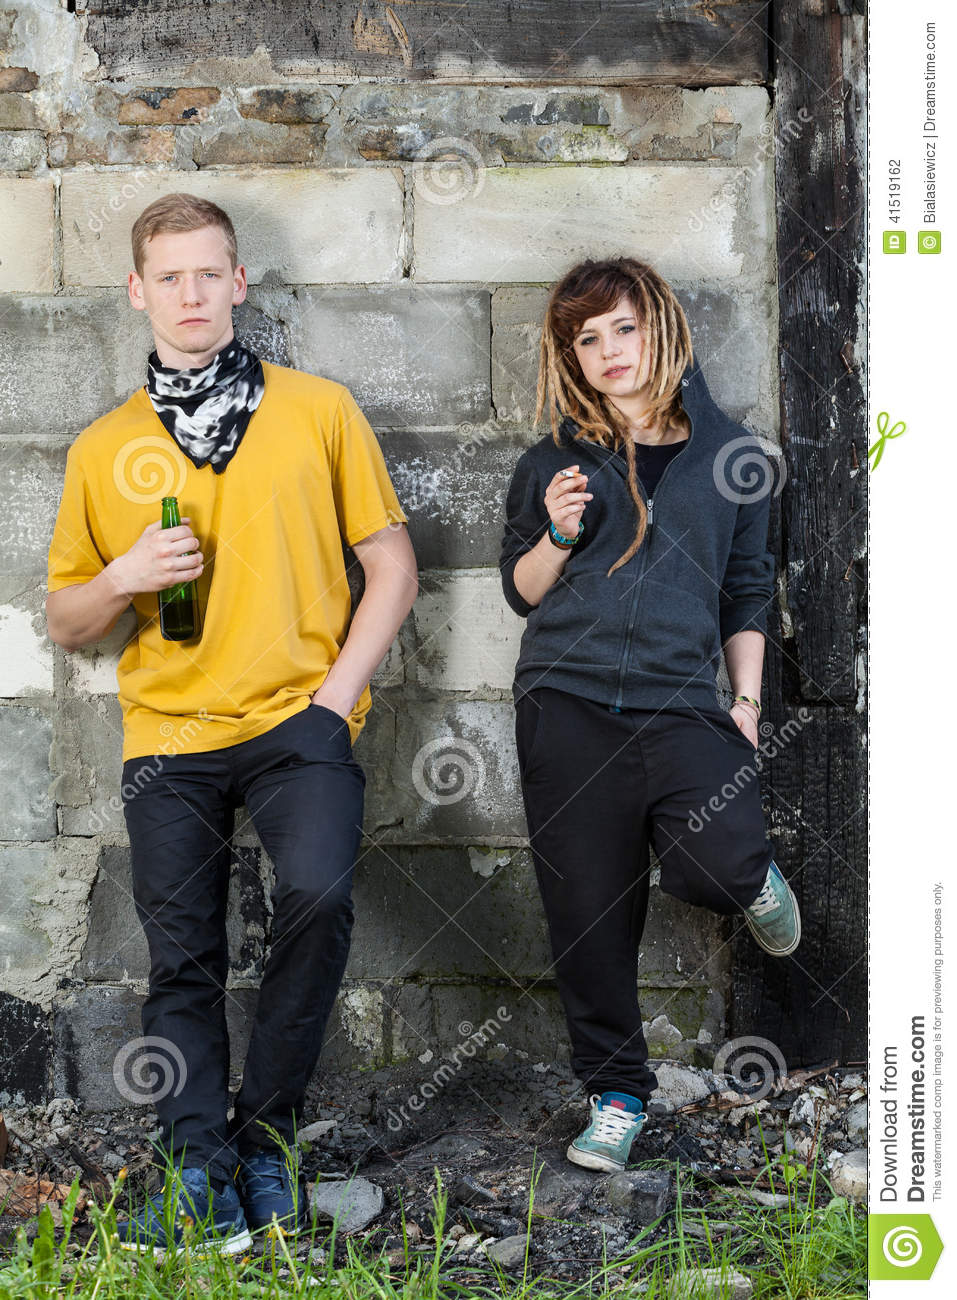 Young Pupils Drinking Beer Stock Photo - Image: 41519162